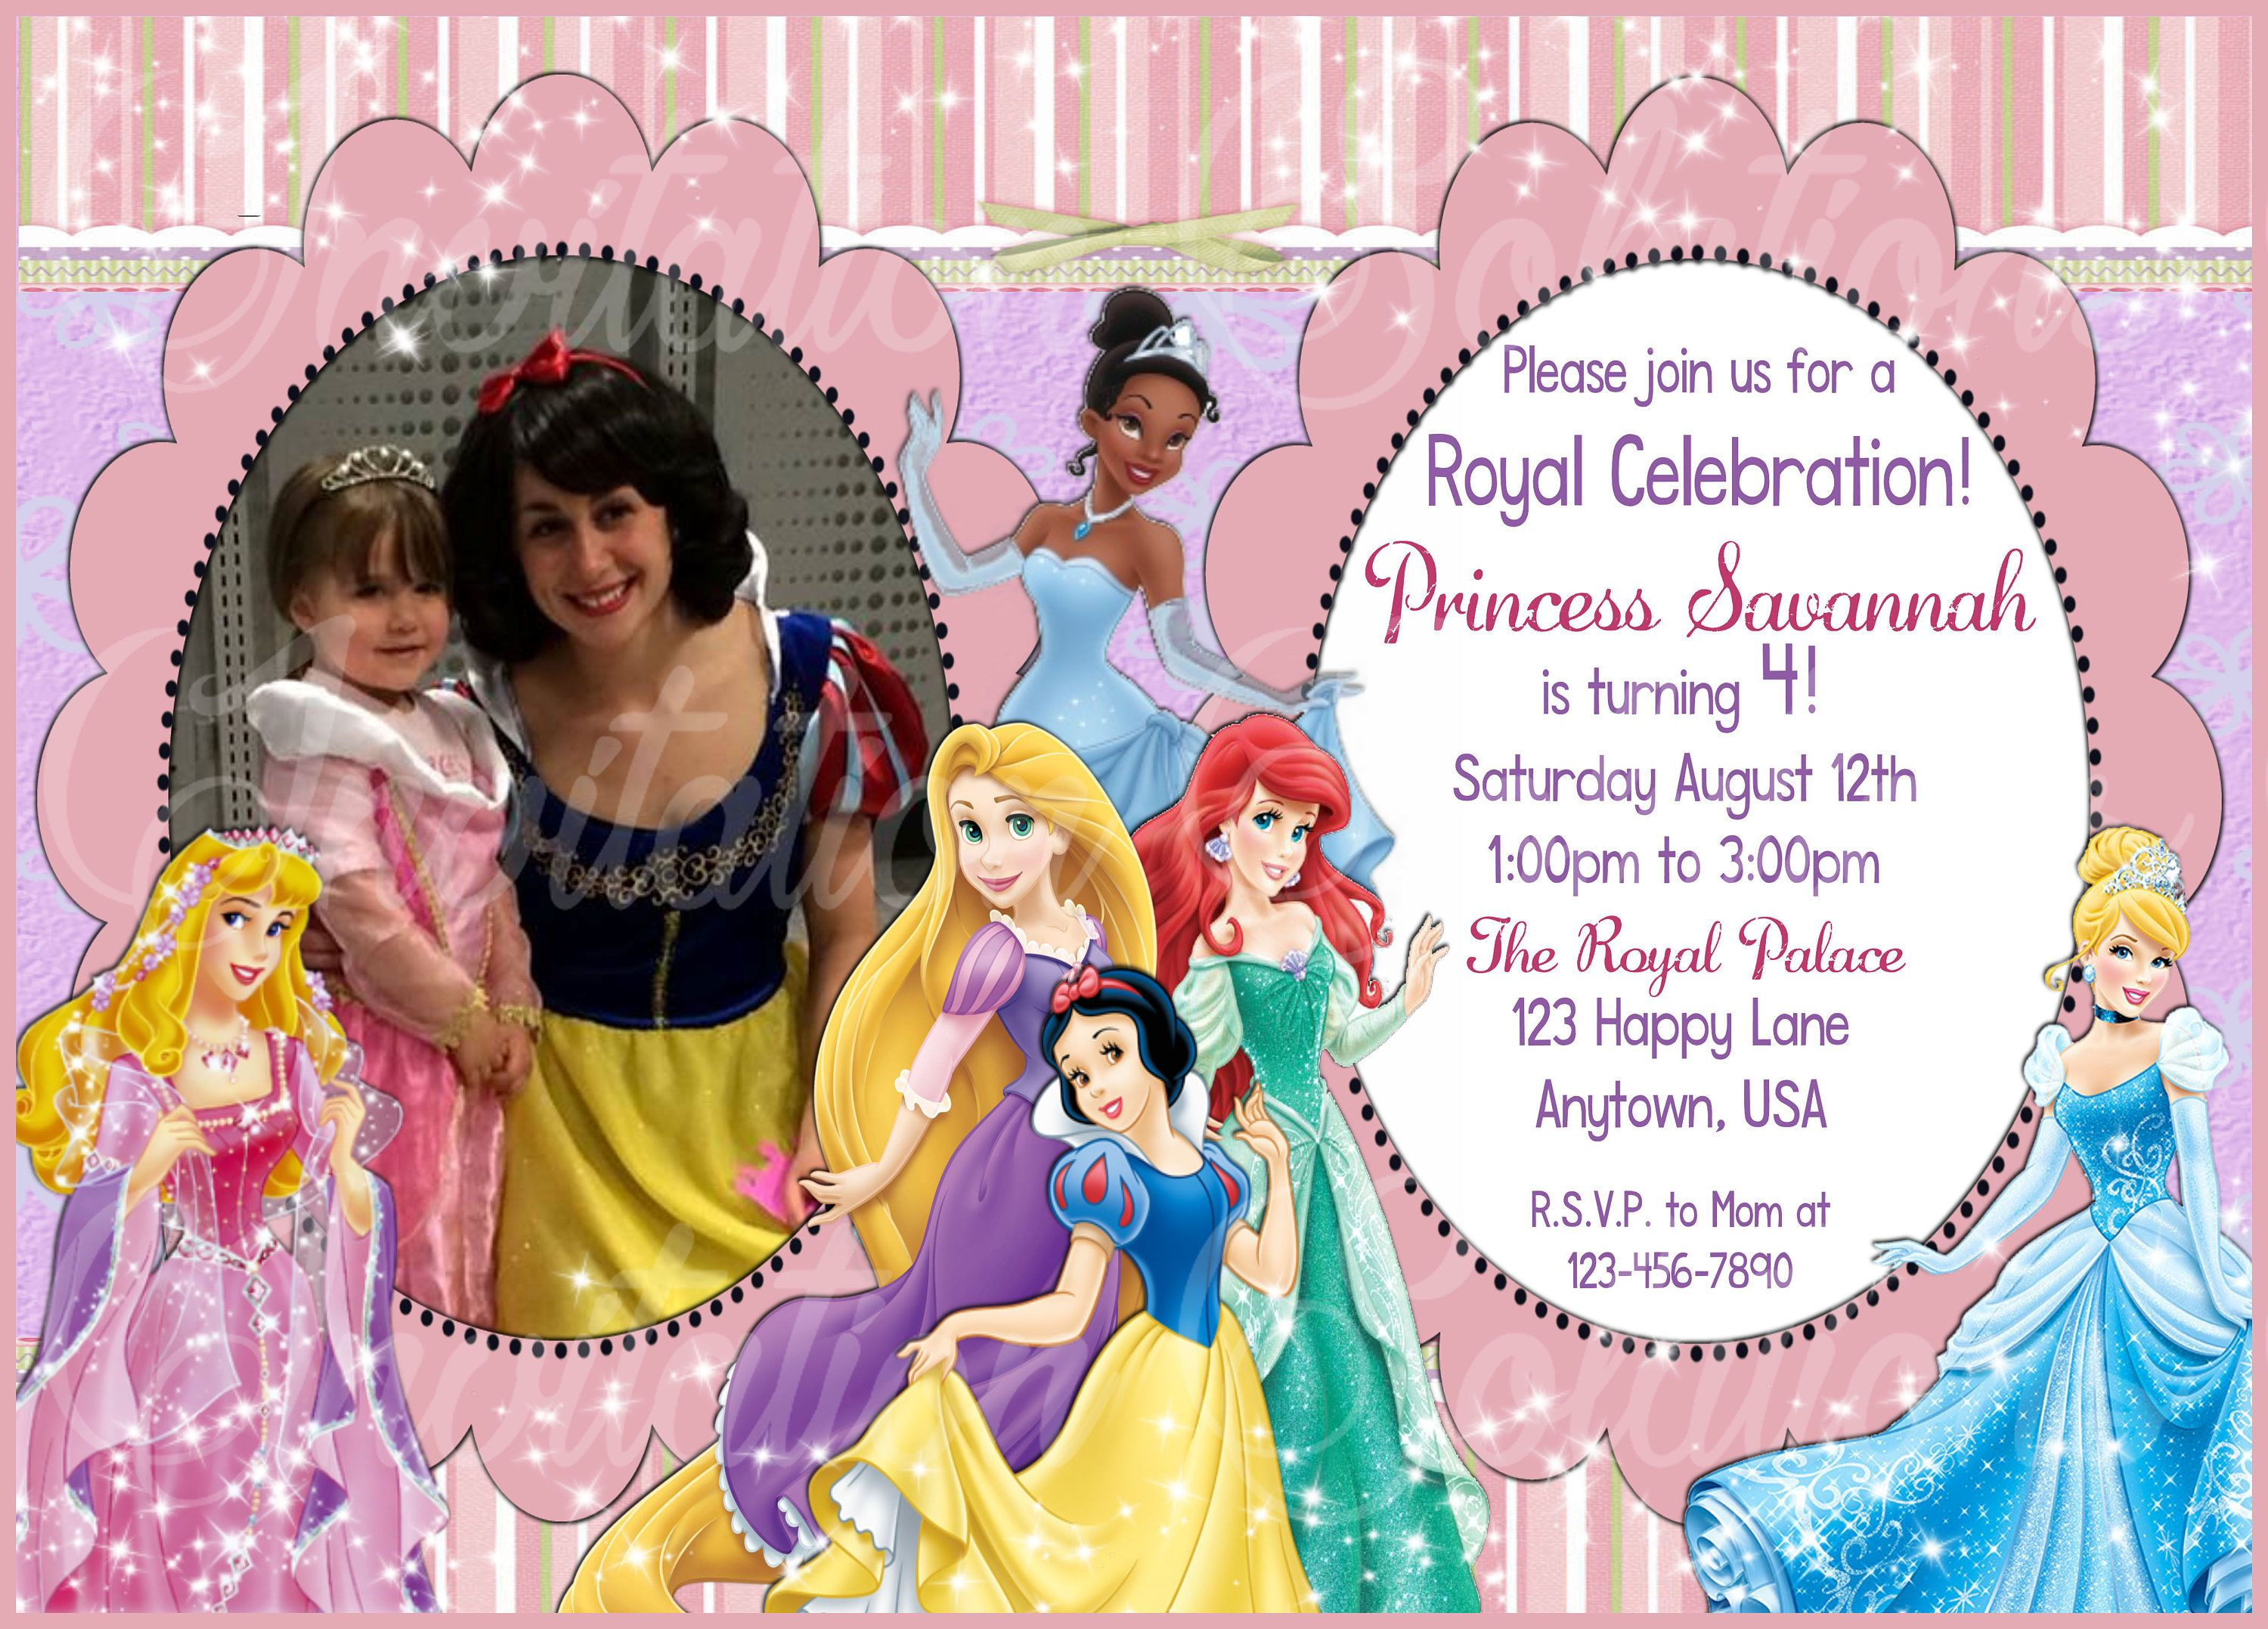 Disney Princess Birthday Invitation With Childs Photo 6 Different Princesses And Your Custom By InviteSolution On Etsy